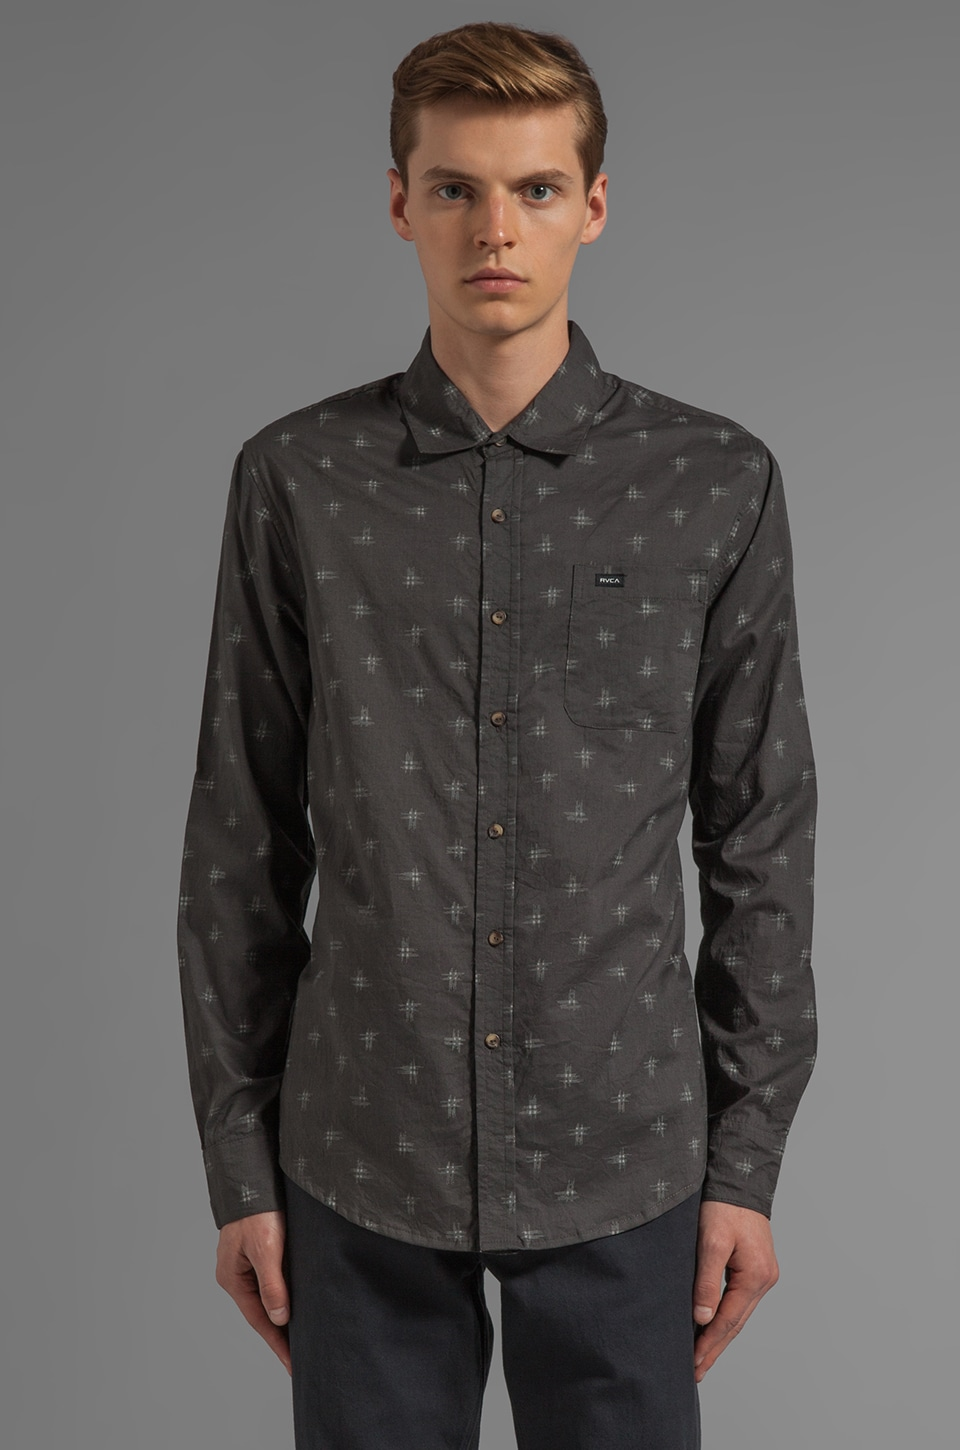 RVCA Bowman L/S Button Down in Dark Slate